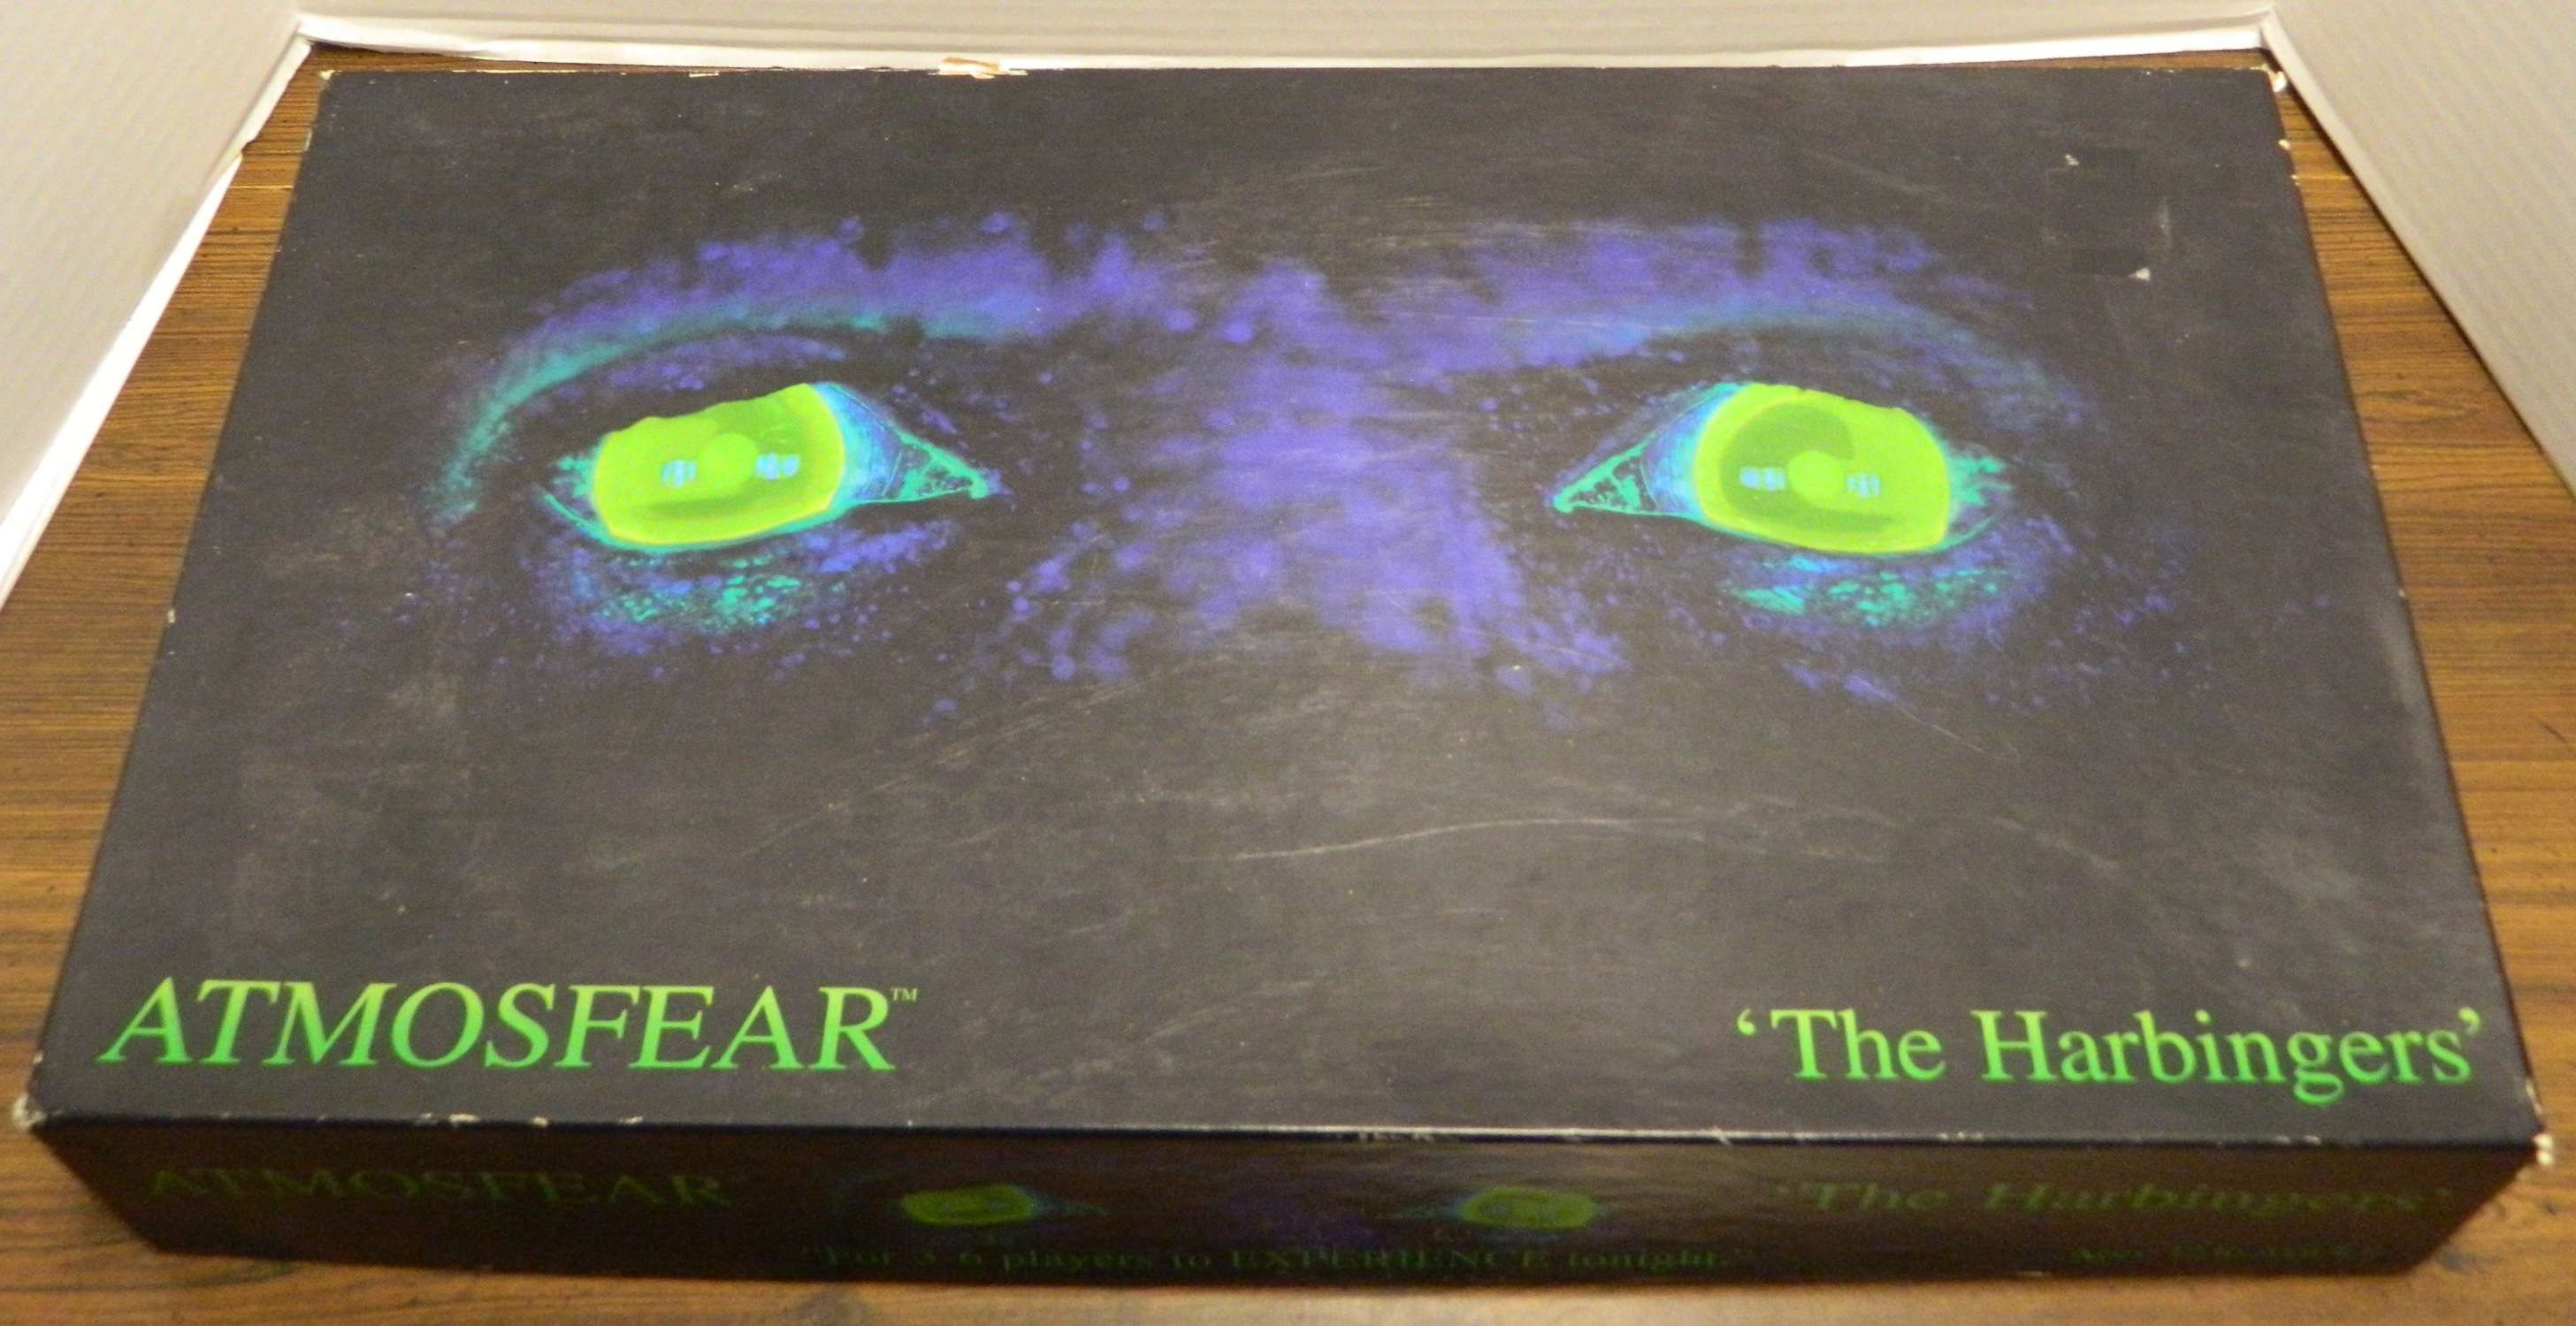 [Jeu] Association d'images - Page 2 Atmosfear-The-Harbingers-Board-Game-Box